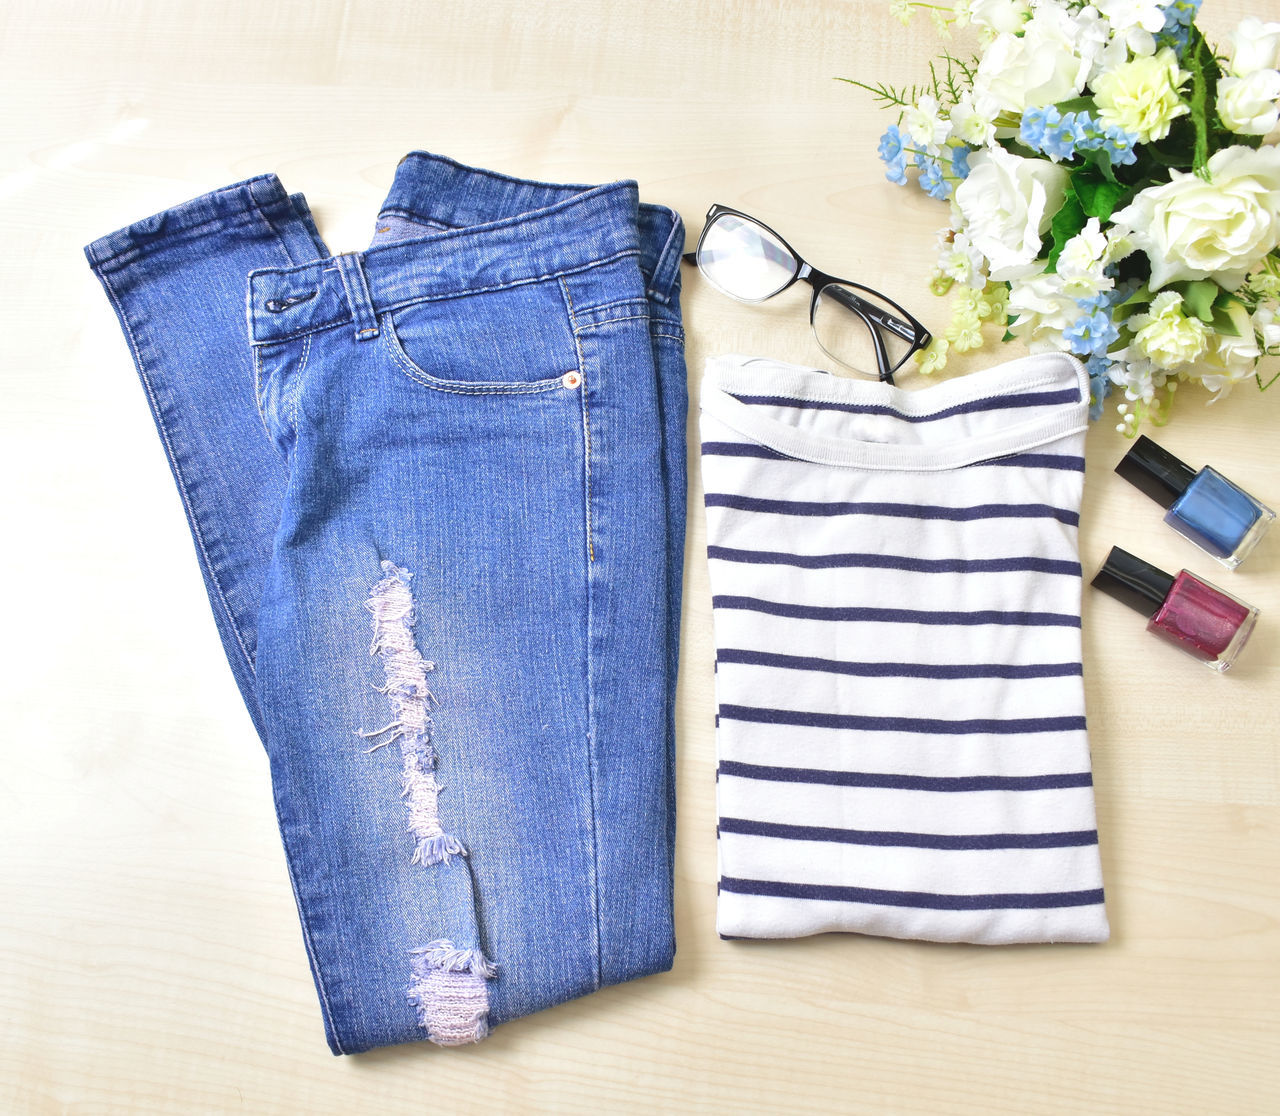 My casual jeans and shirt when the weather is warm and cosy. FlatLay Photography Flatlayphotography Flatlaycontest Flatlaystudio Flat white Janlyn Mode Jeans Accessories Casual Attire Casual Clothing Casual Look Casualstyle Clothing Eyeglasses  Flatlay_inspire Flatlay Flatlays Flower Manicure Nail Paint Skinny Jeans Striped T-shirt Tatteredjeans Flatlaystylist Flatlayoftheday